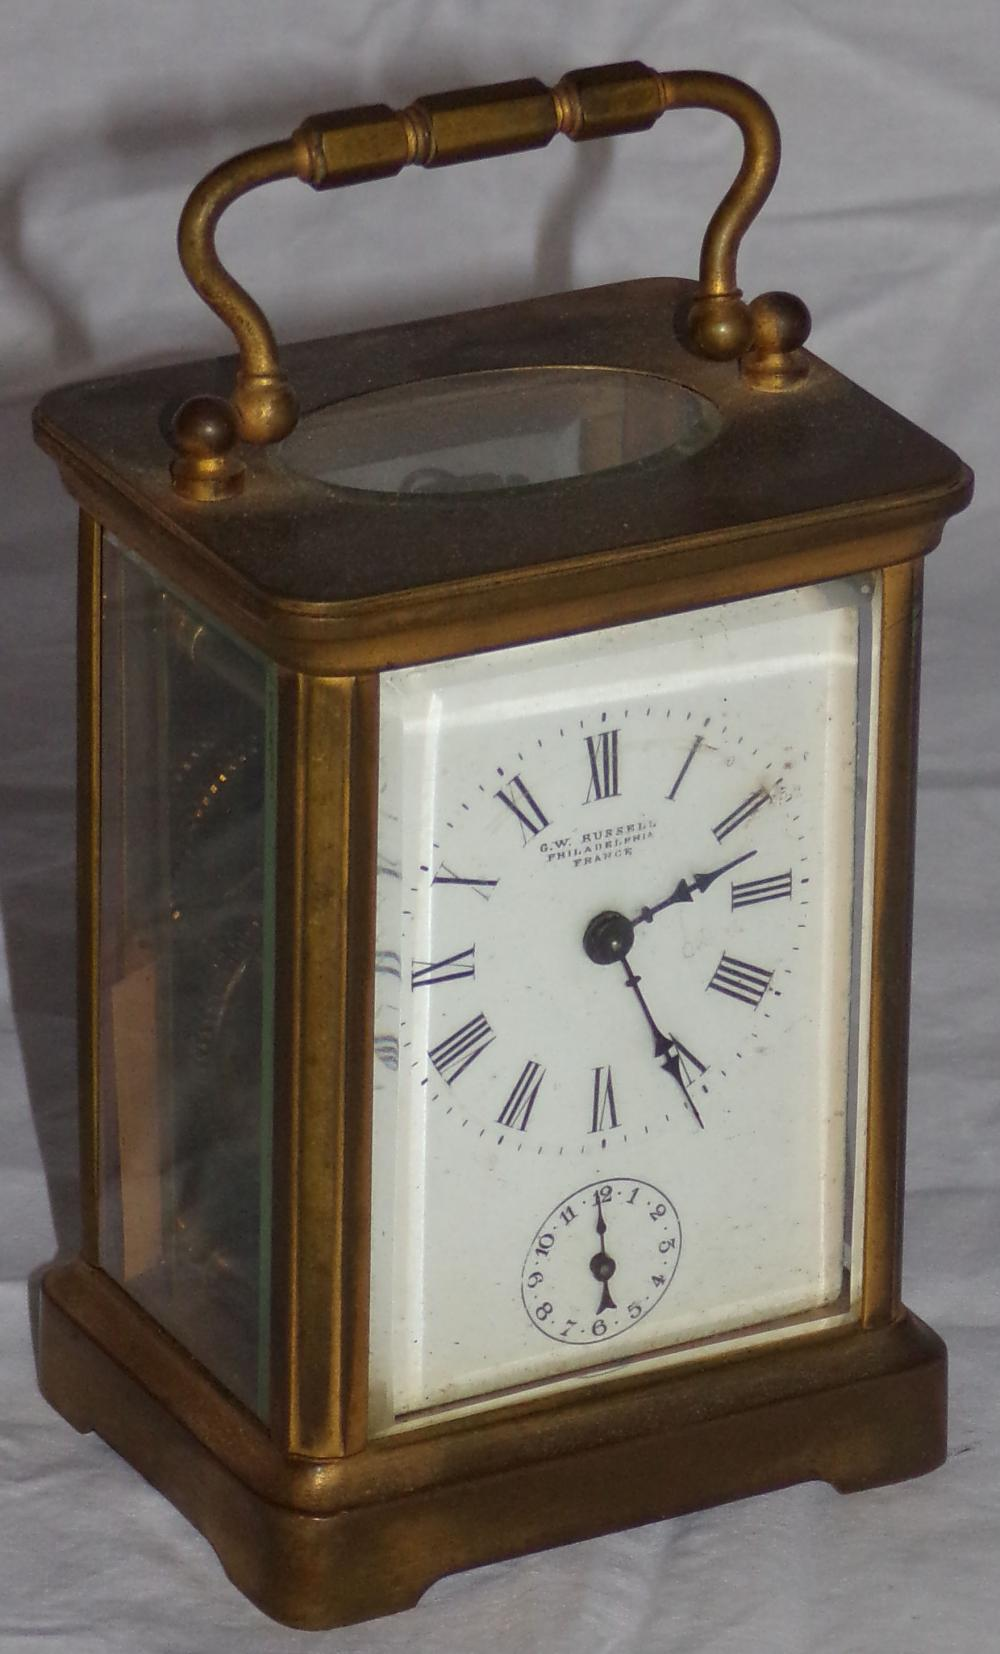 Vintage carriage clock with brass case & beveled glass side & back panels, French movement marked H &H, marked G.W. Russel, Philadelphia on dial